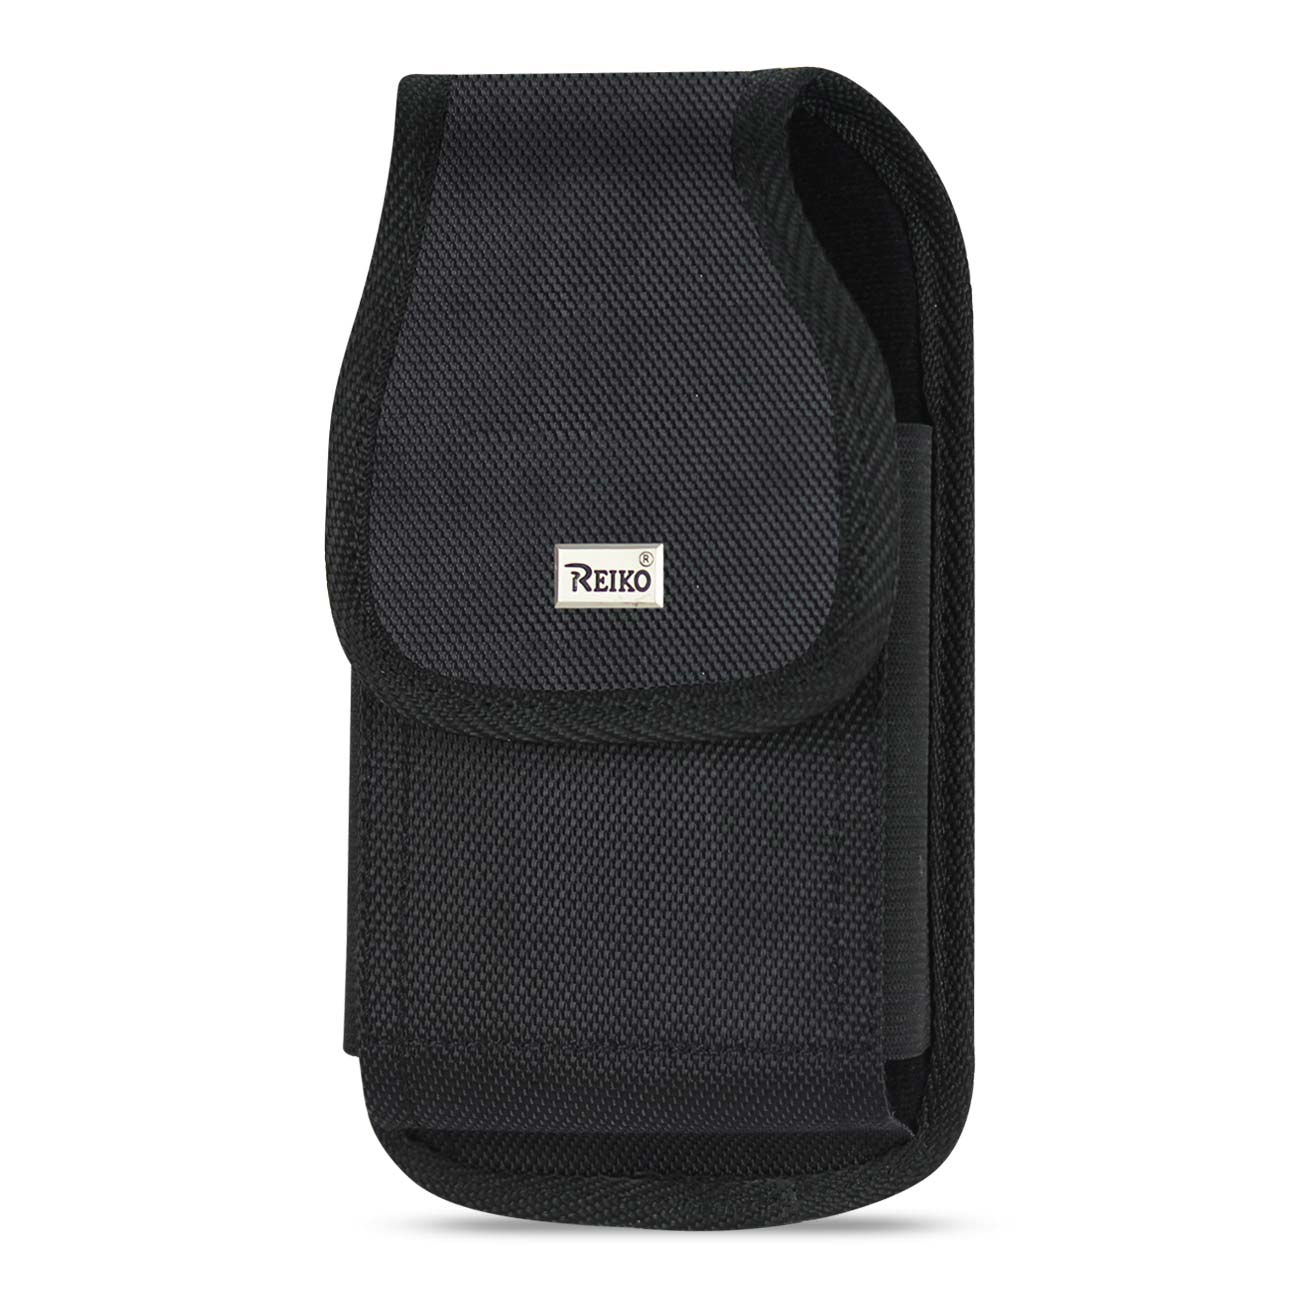 Vertical Rugged Pouch With Metal Belt Clip In Black (6.6X3.5X0.7 Inches)